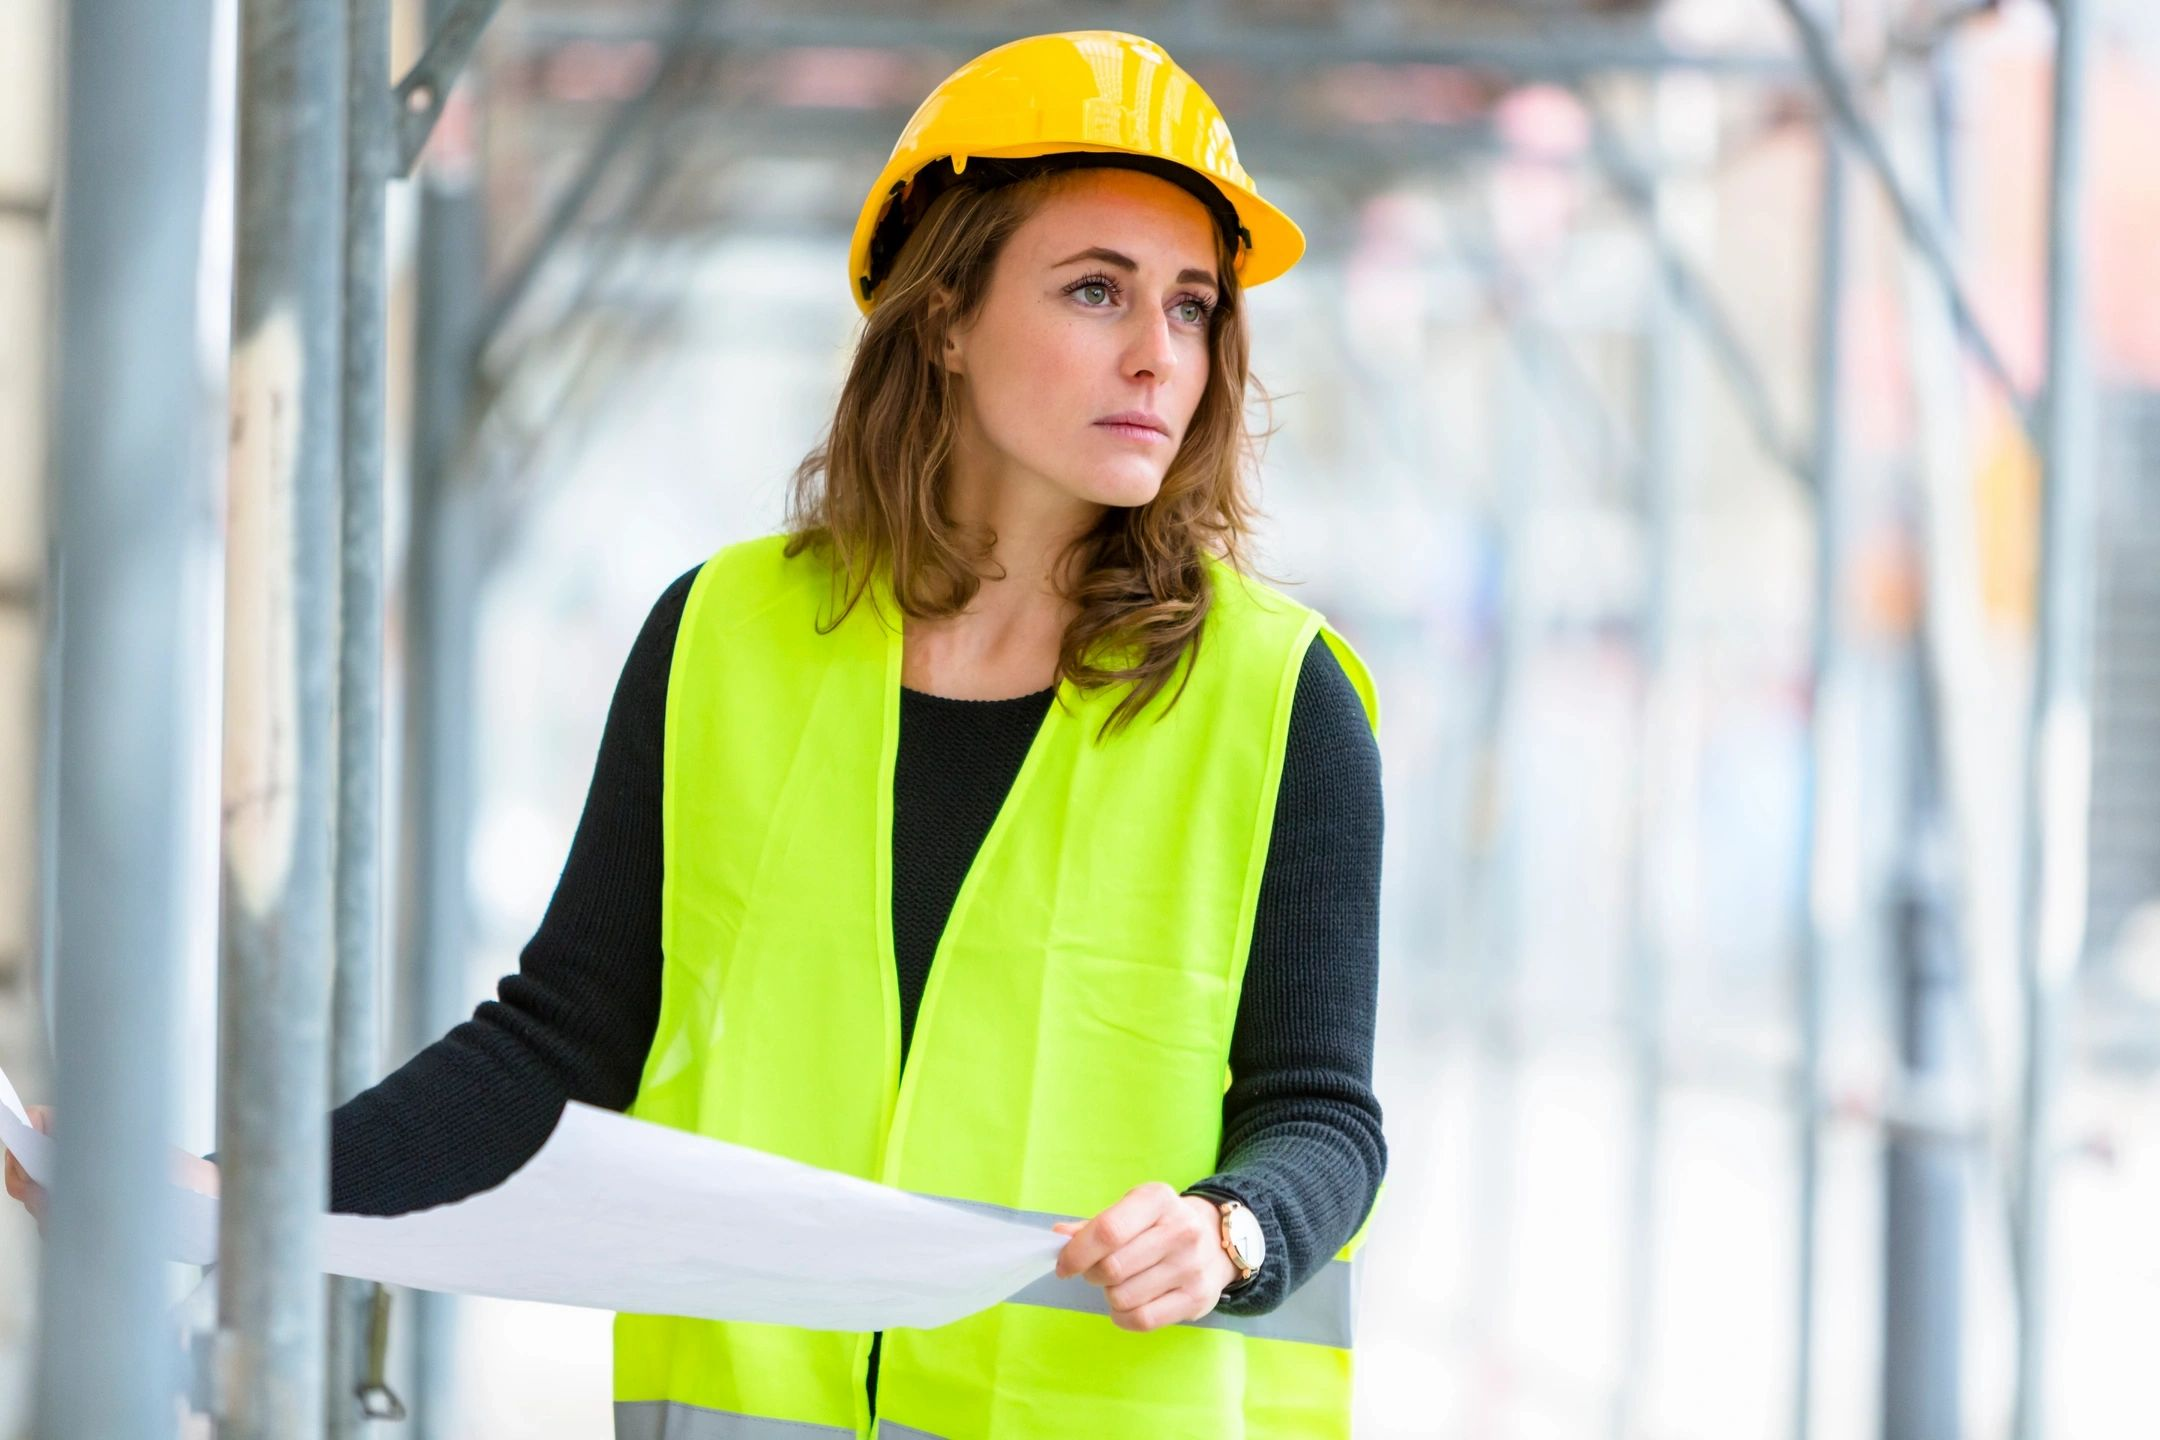 4 Tips On Increasing Safety at Your Business Premises